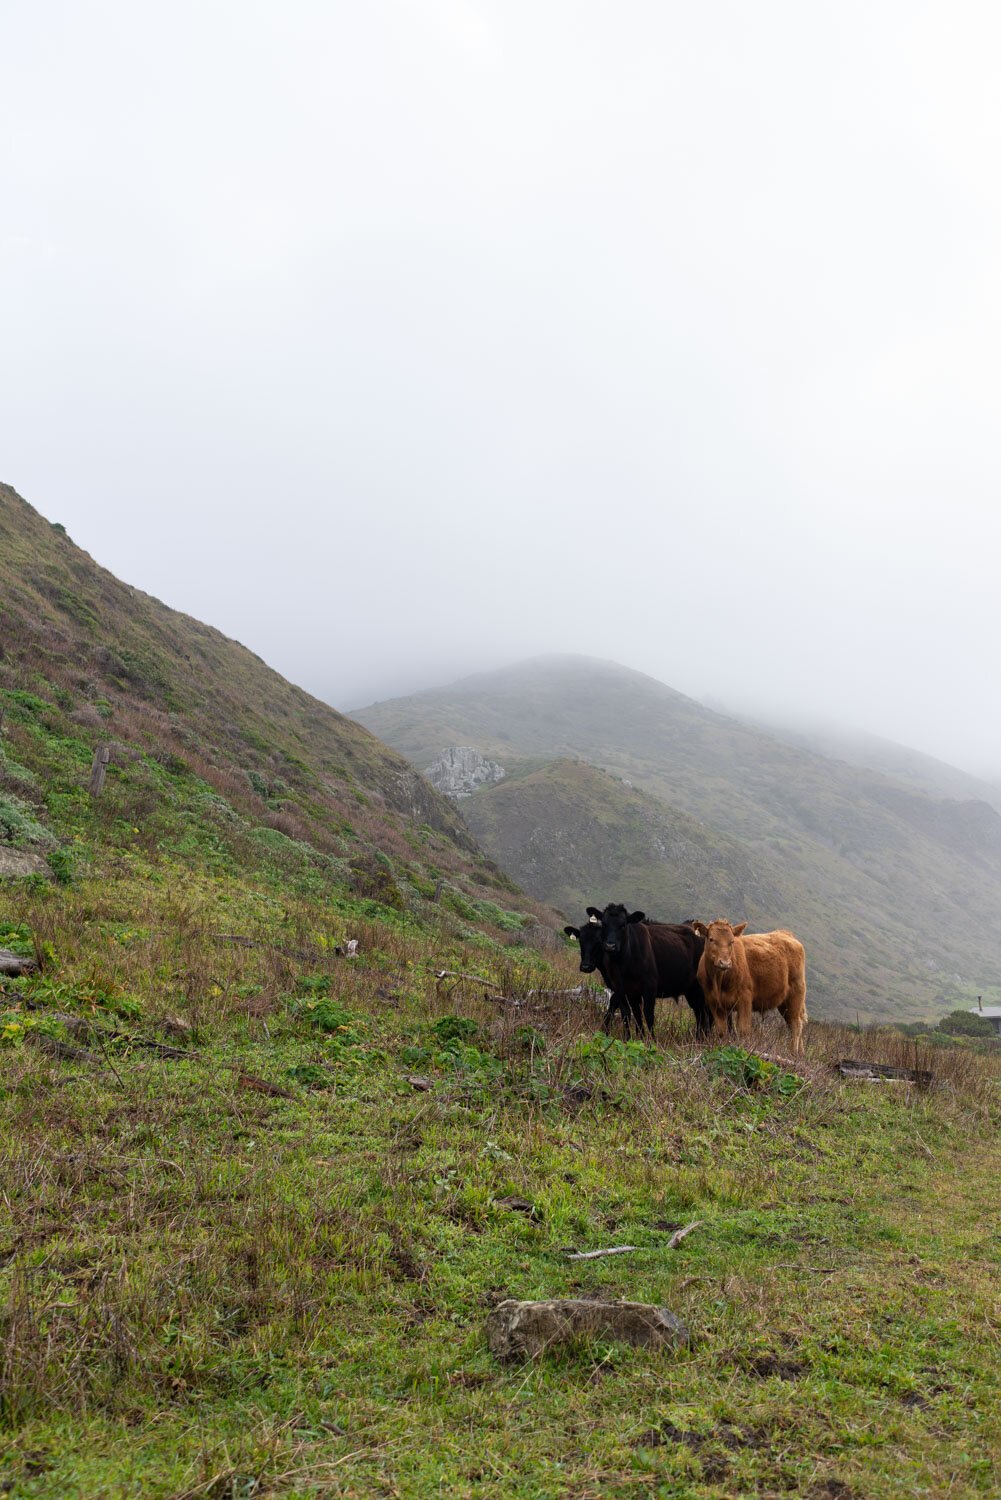 Cows of the King Range Wilderness